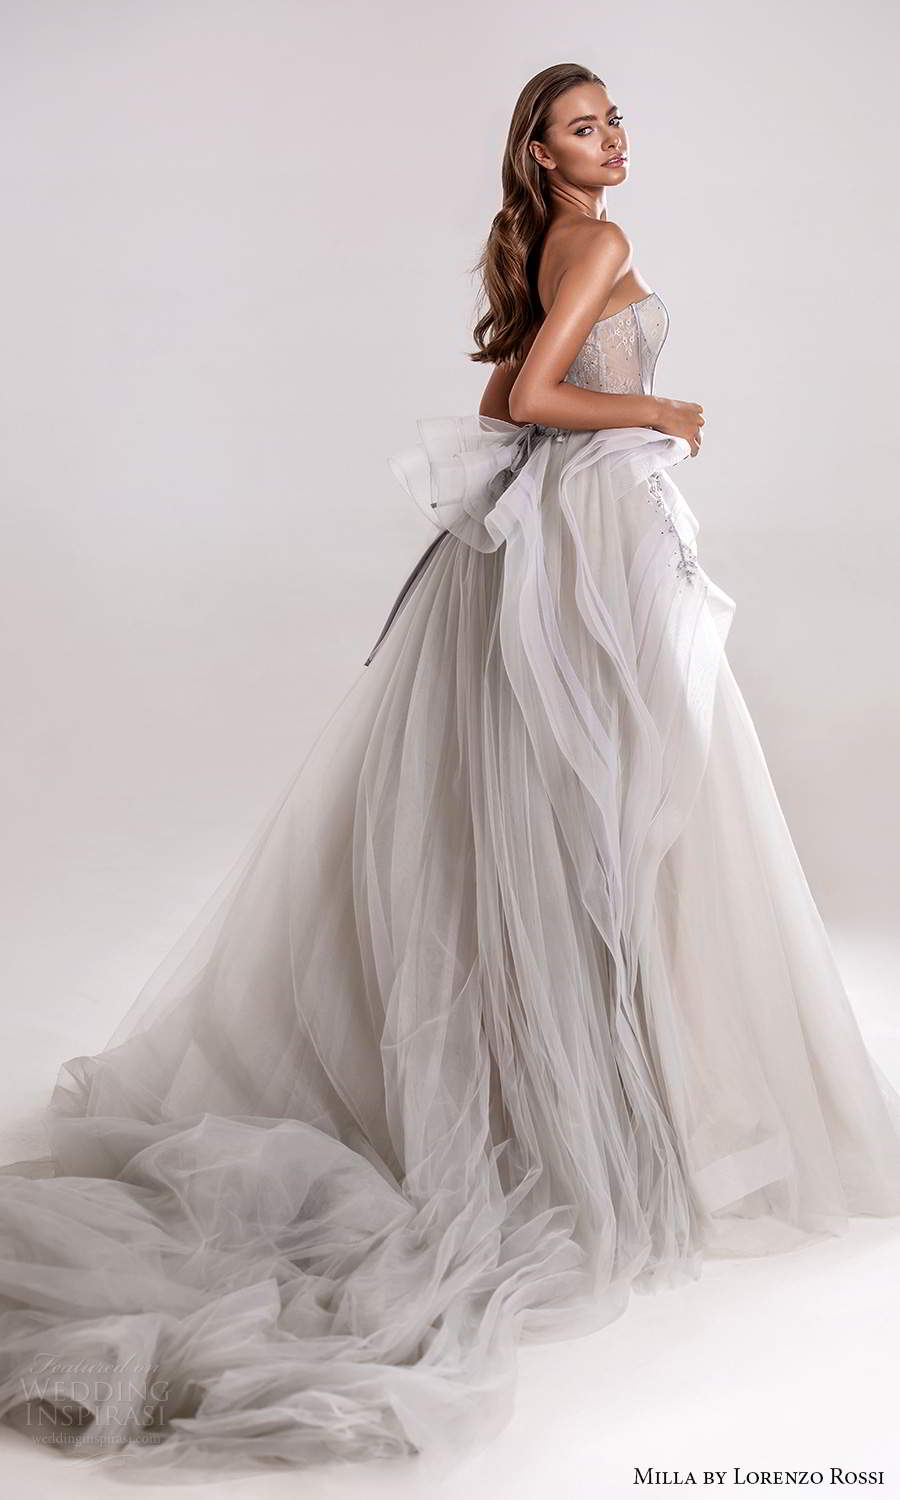 milla by lorenzo rossi 2020 rtw strapless straight across sheer corset bodice a line ball gown wedding dress grey color (18) sv